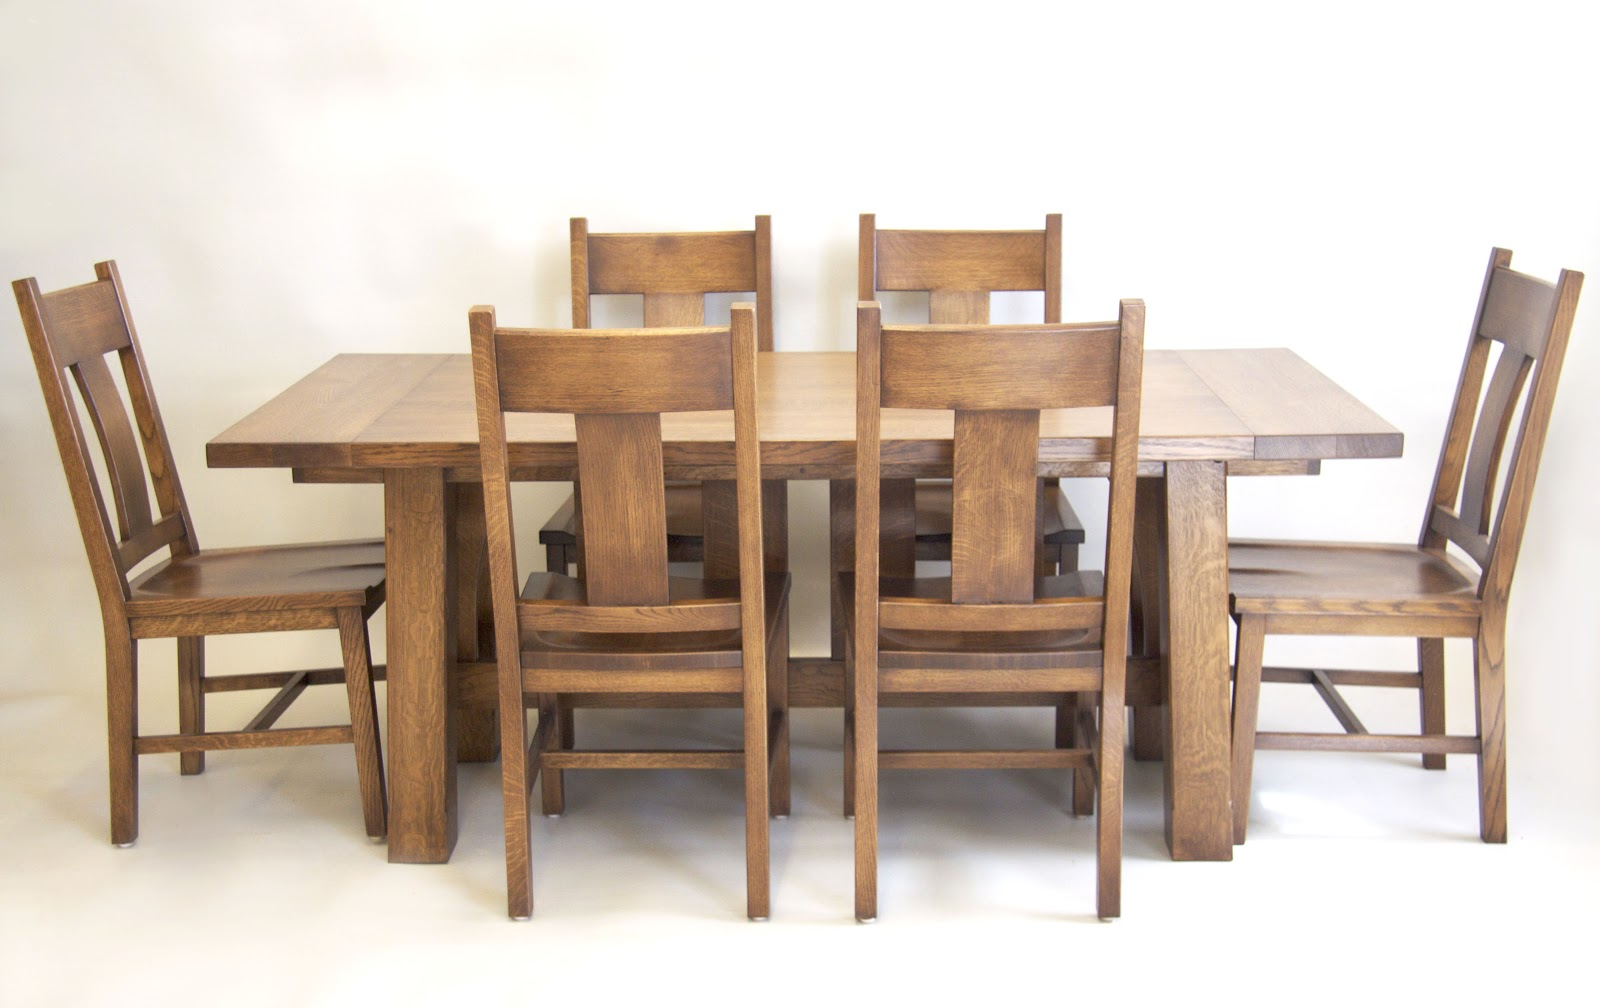 Arts and crafts chairs - Finished Arts And Crafts Dining Table And Chairs